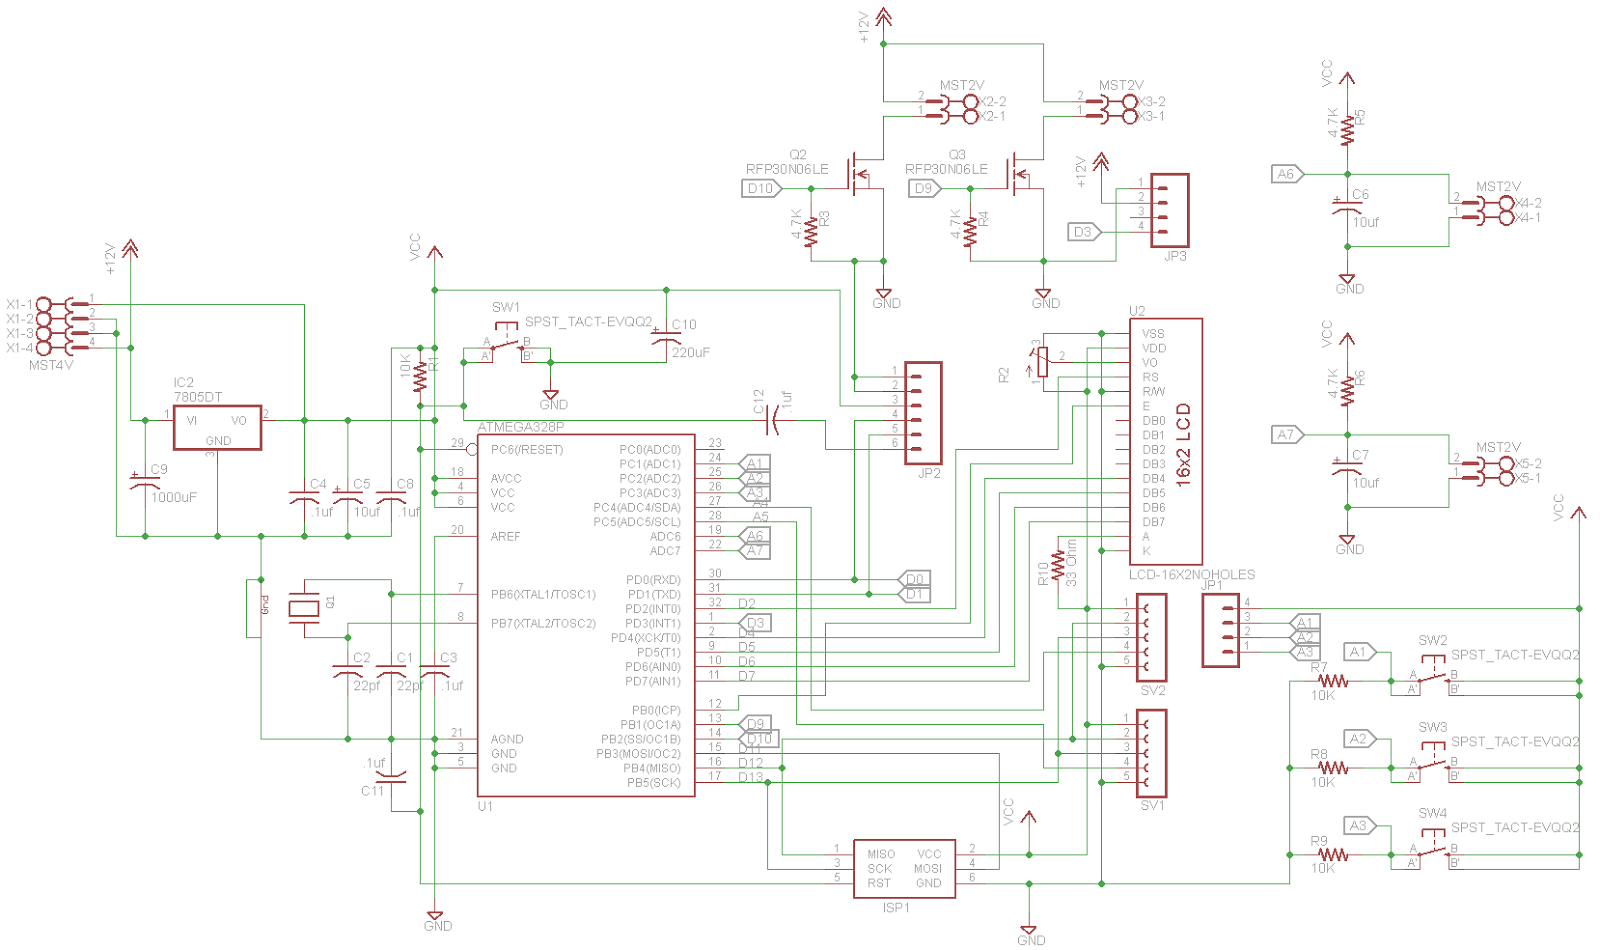 reed switch 3 wire diagram 3 sd switch wiring diagram schematic wiring diagram  3 sd switch wiring diagram schematic